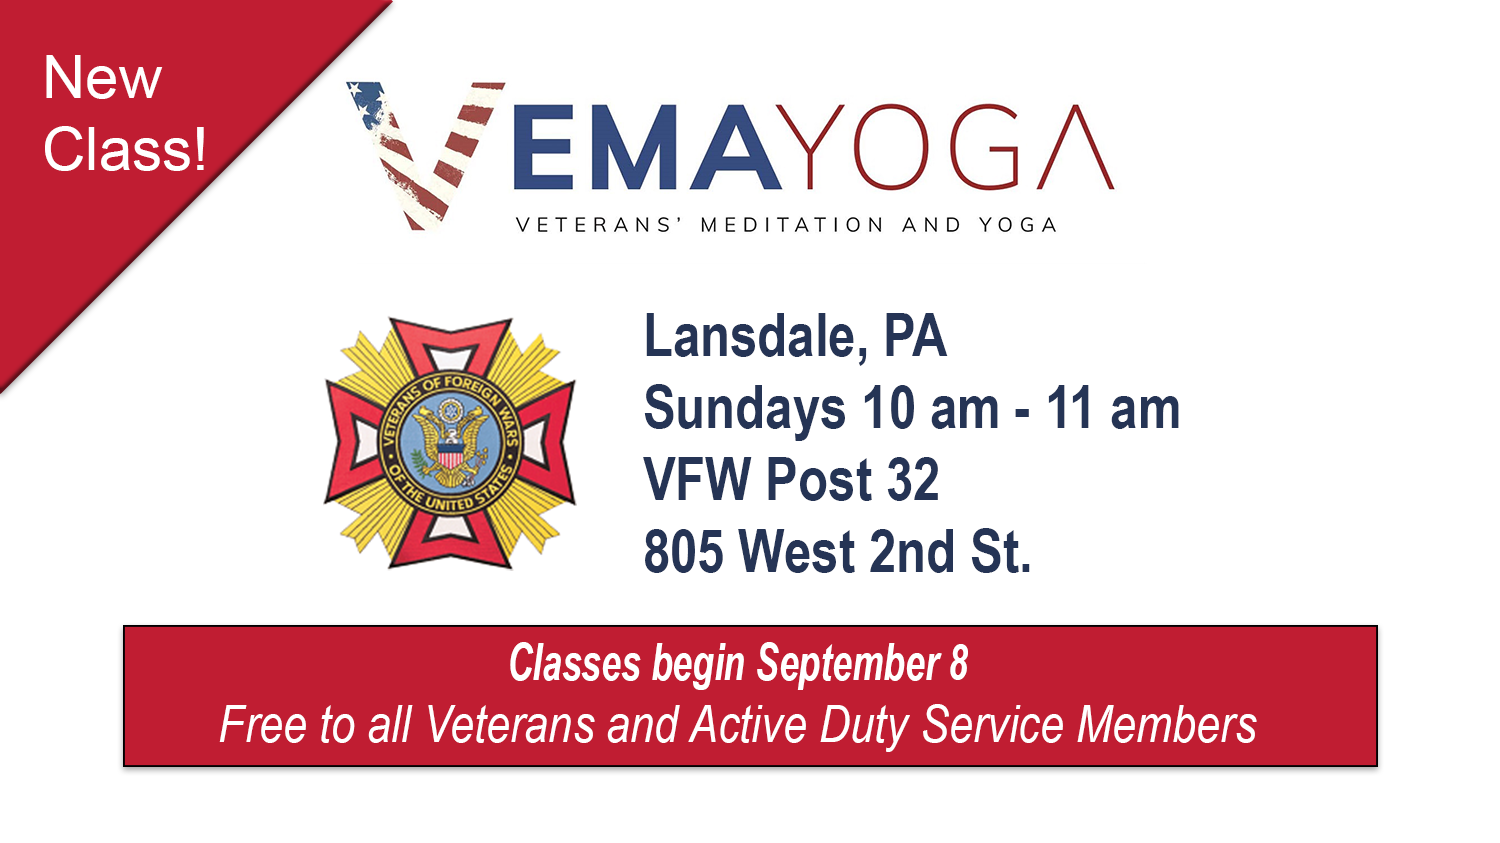 New VEMA Yoga class in Lansdale